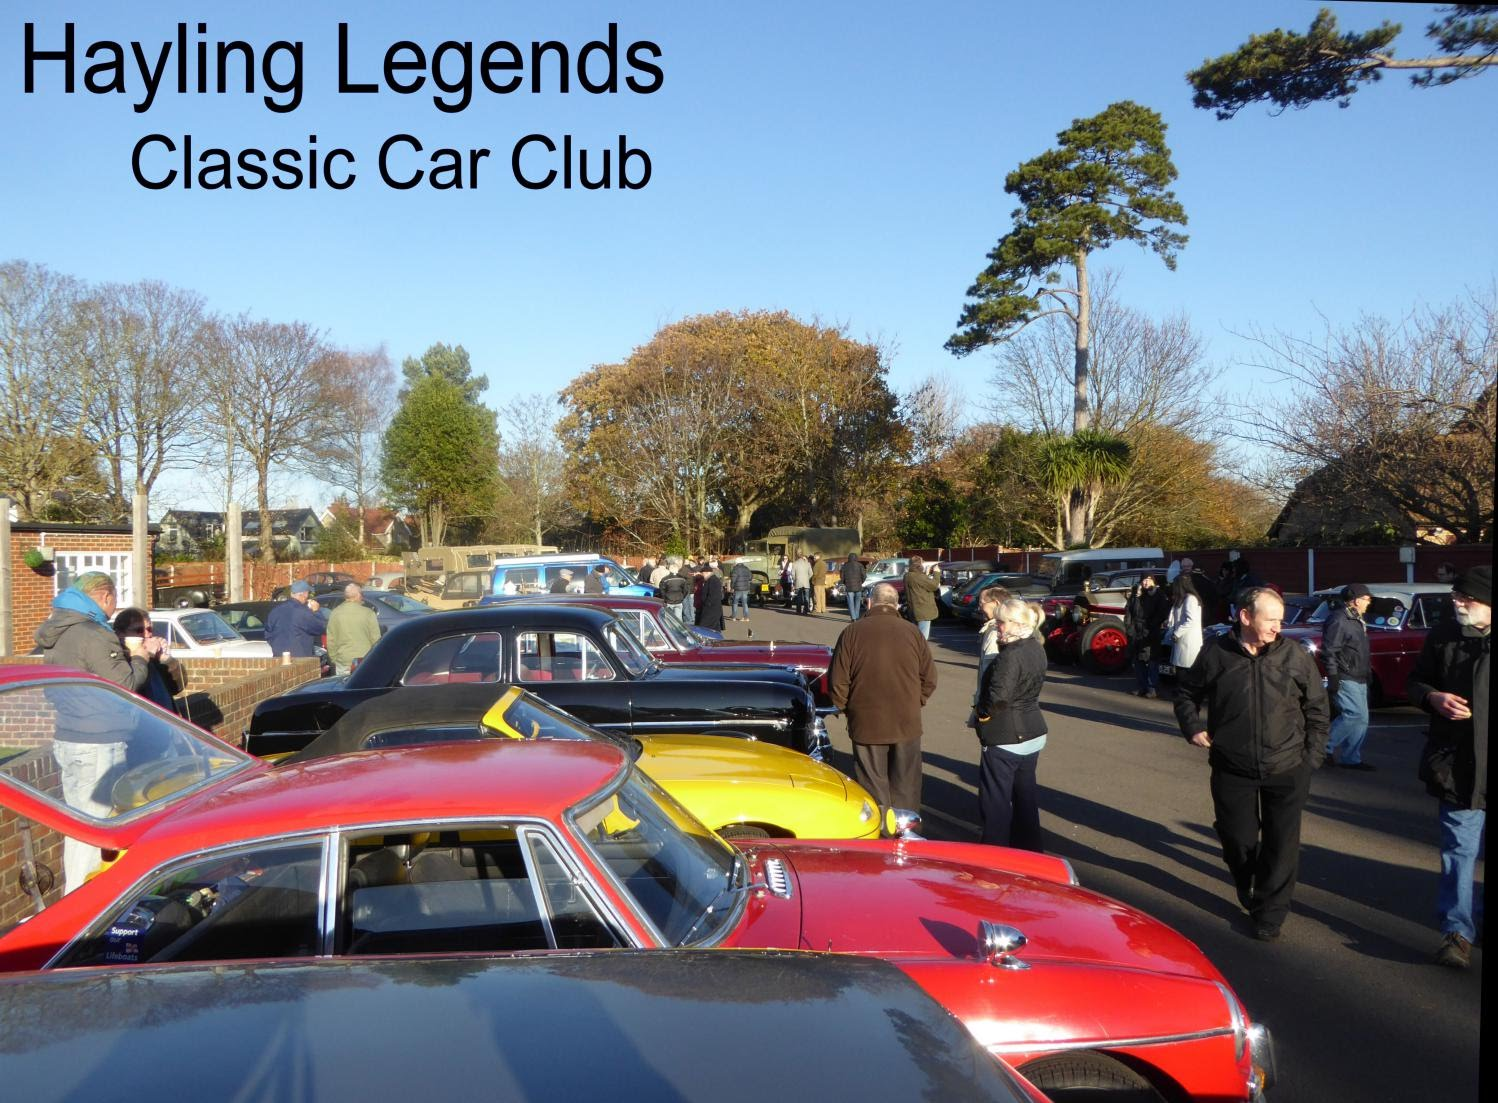 Hayling Legends Classic Car Club - Classic car sites